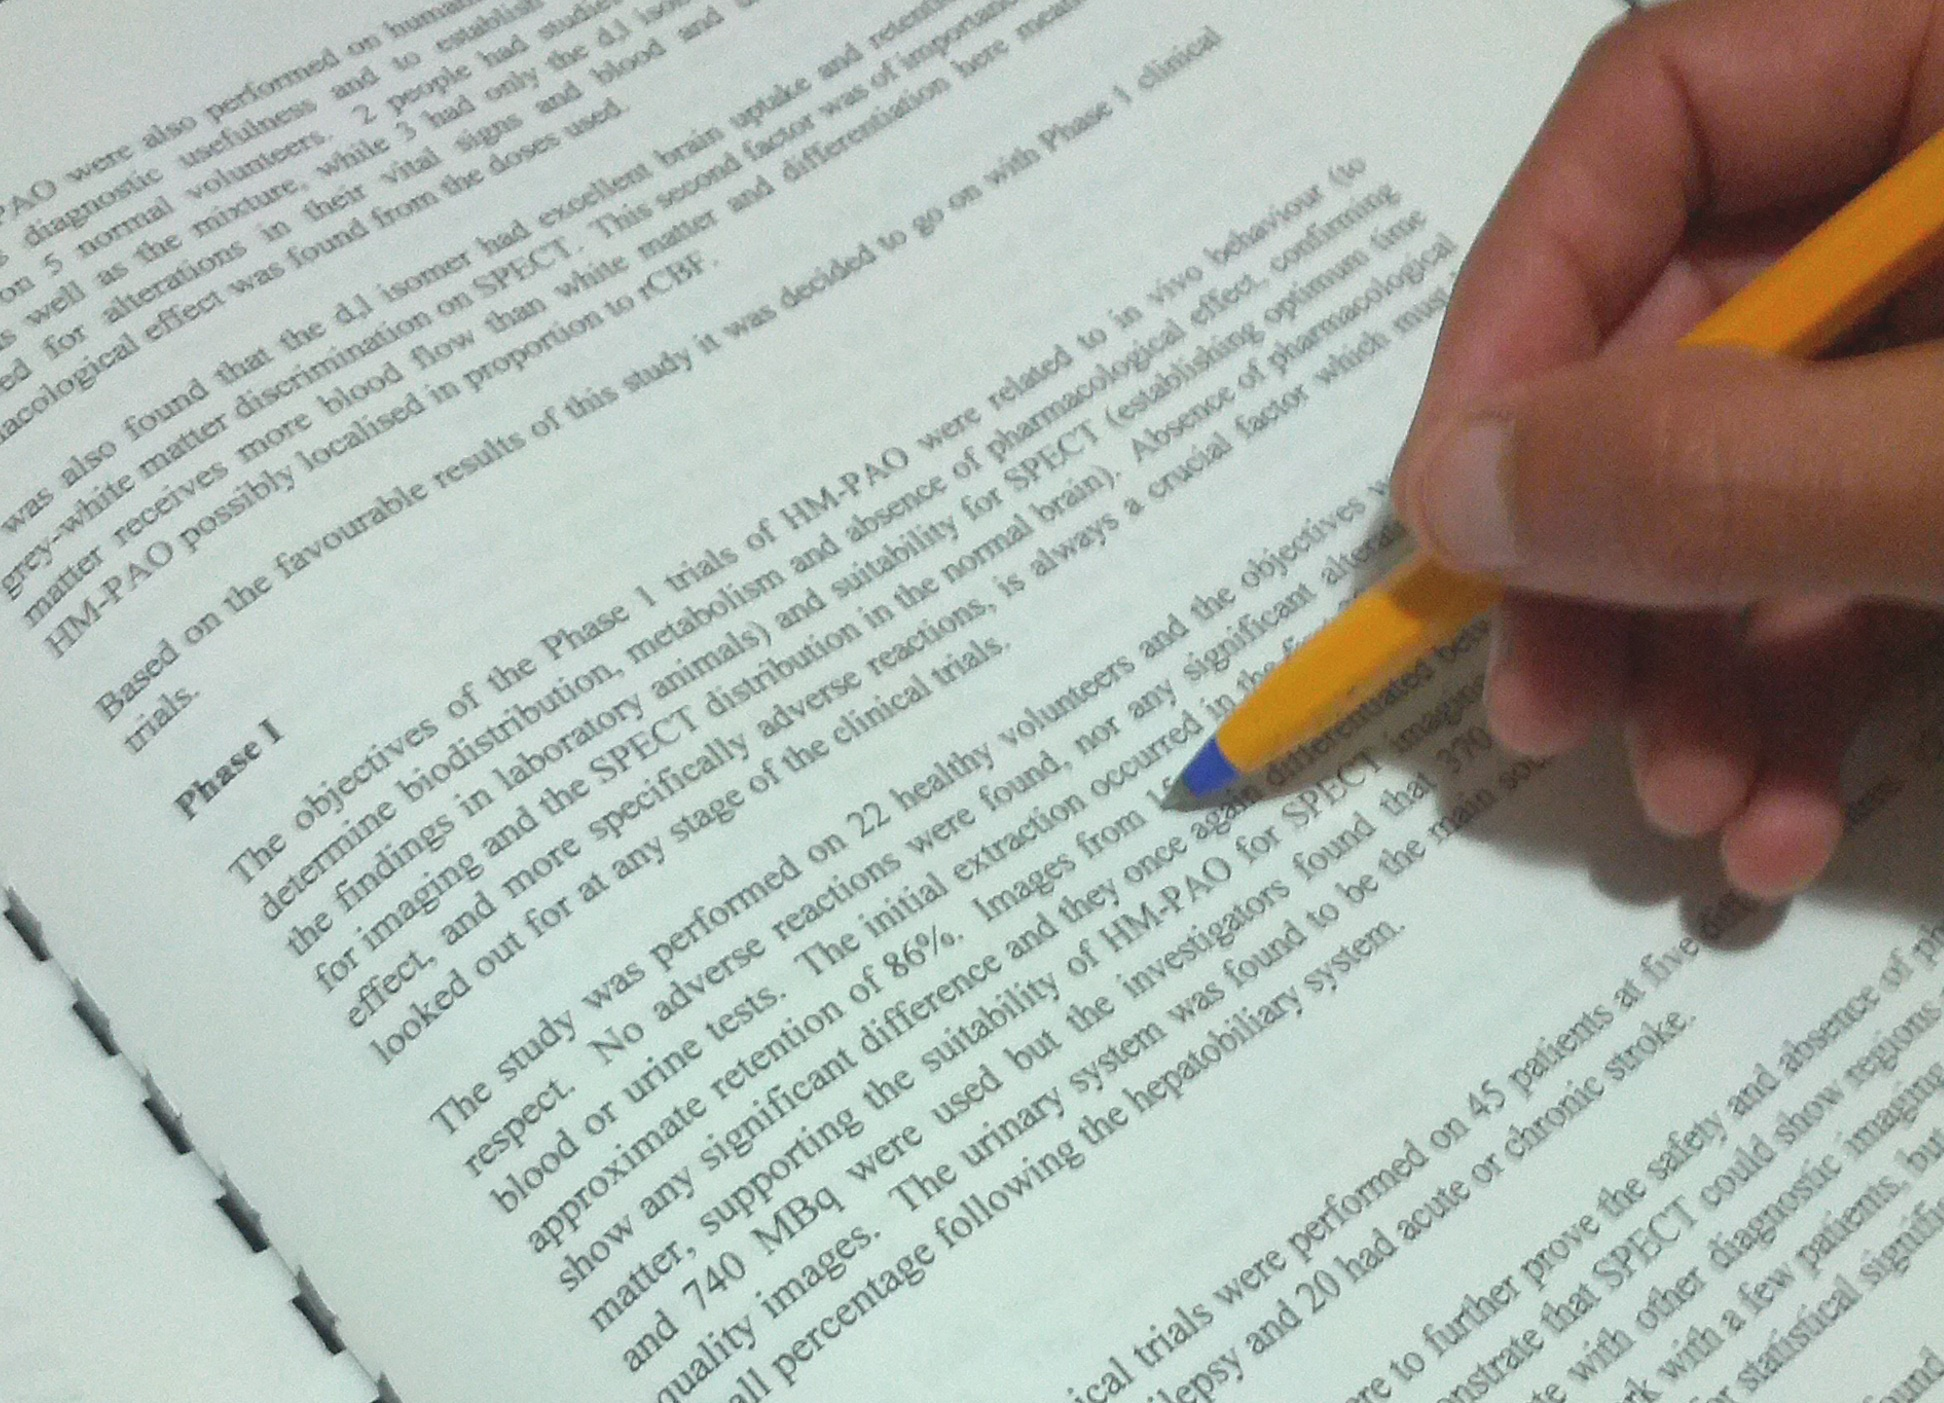 profesionally proofread and re-write your document